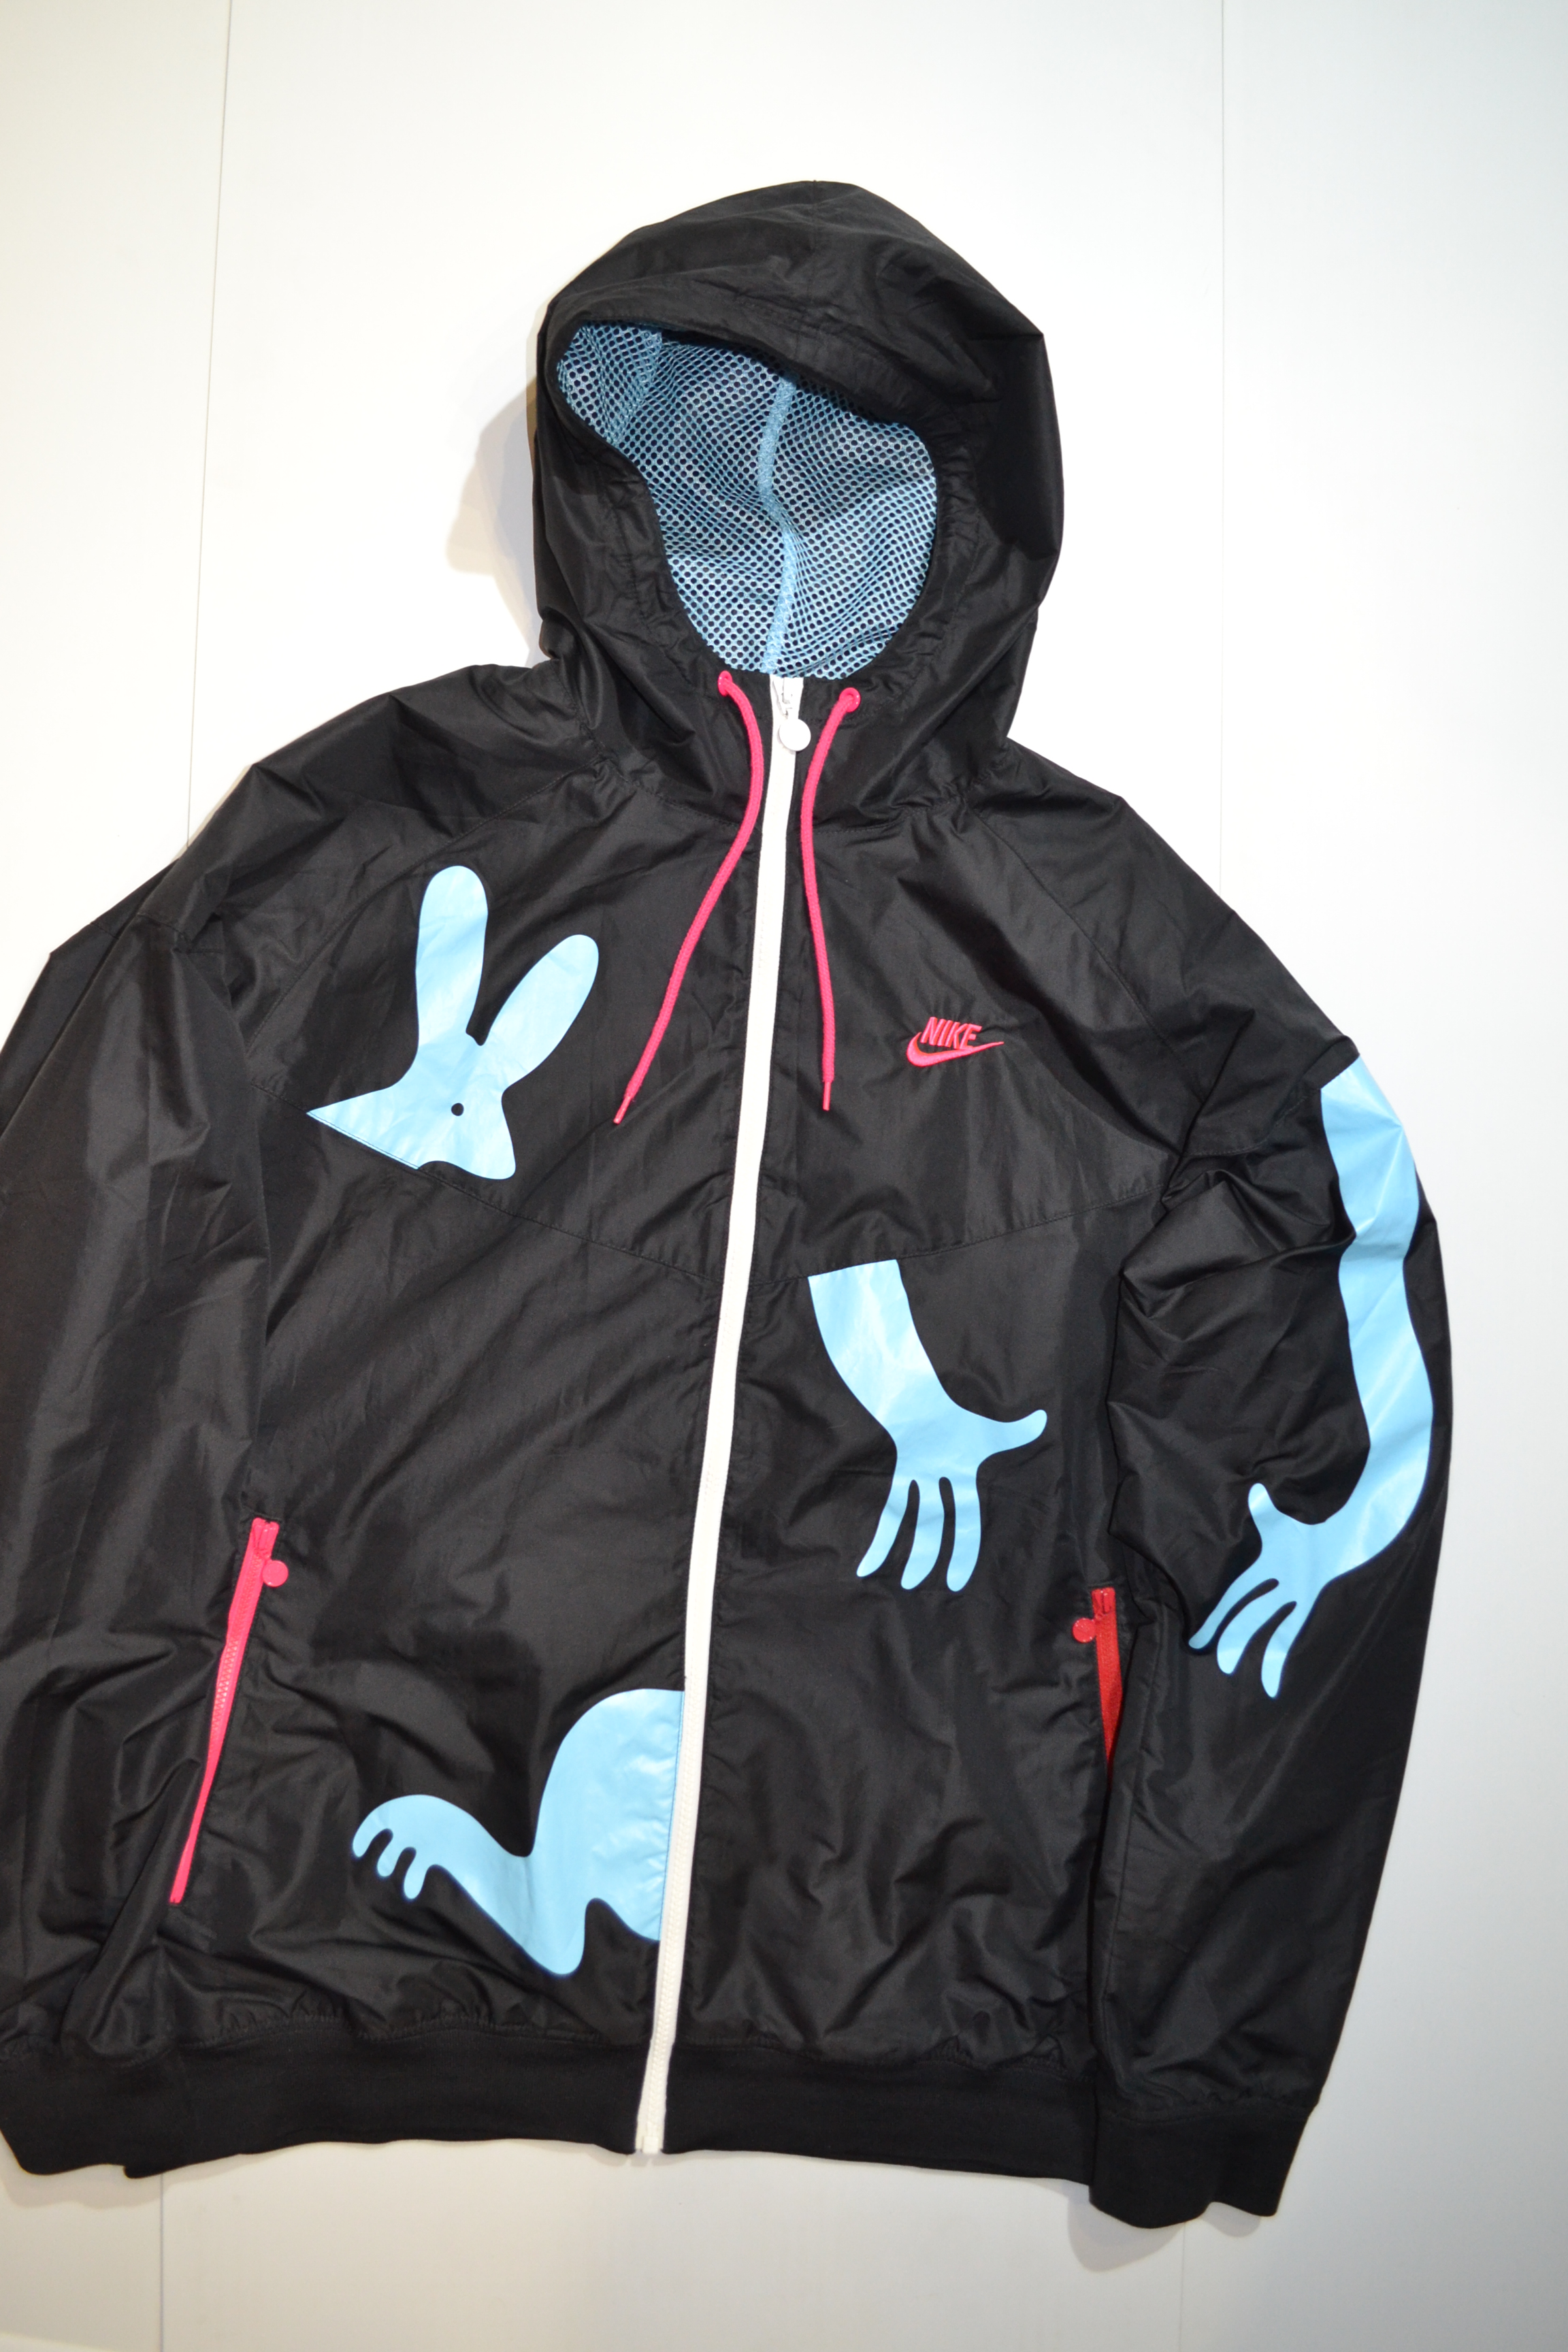 Nike Rare Nike x Parra The Running Man L size Windbreaker Jacket Size l -  Light Jackets for Sale - Grailed 12cab6d98